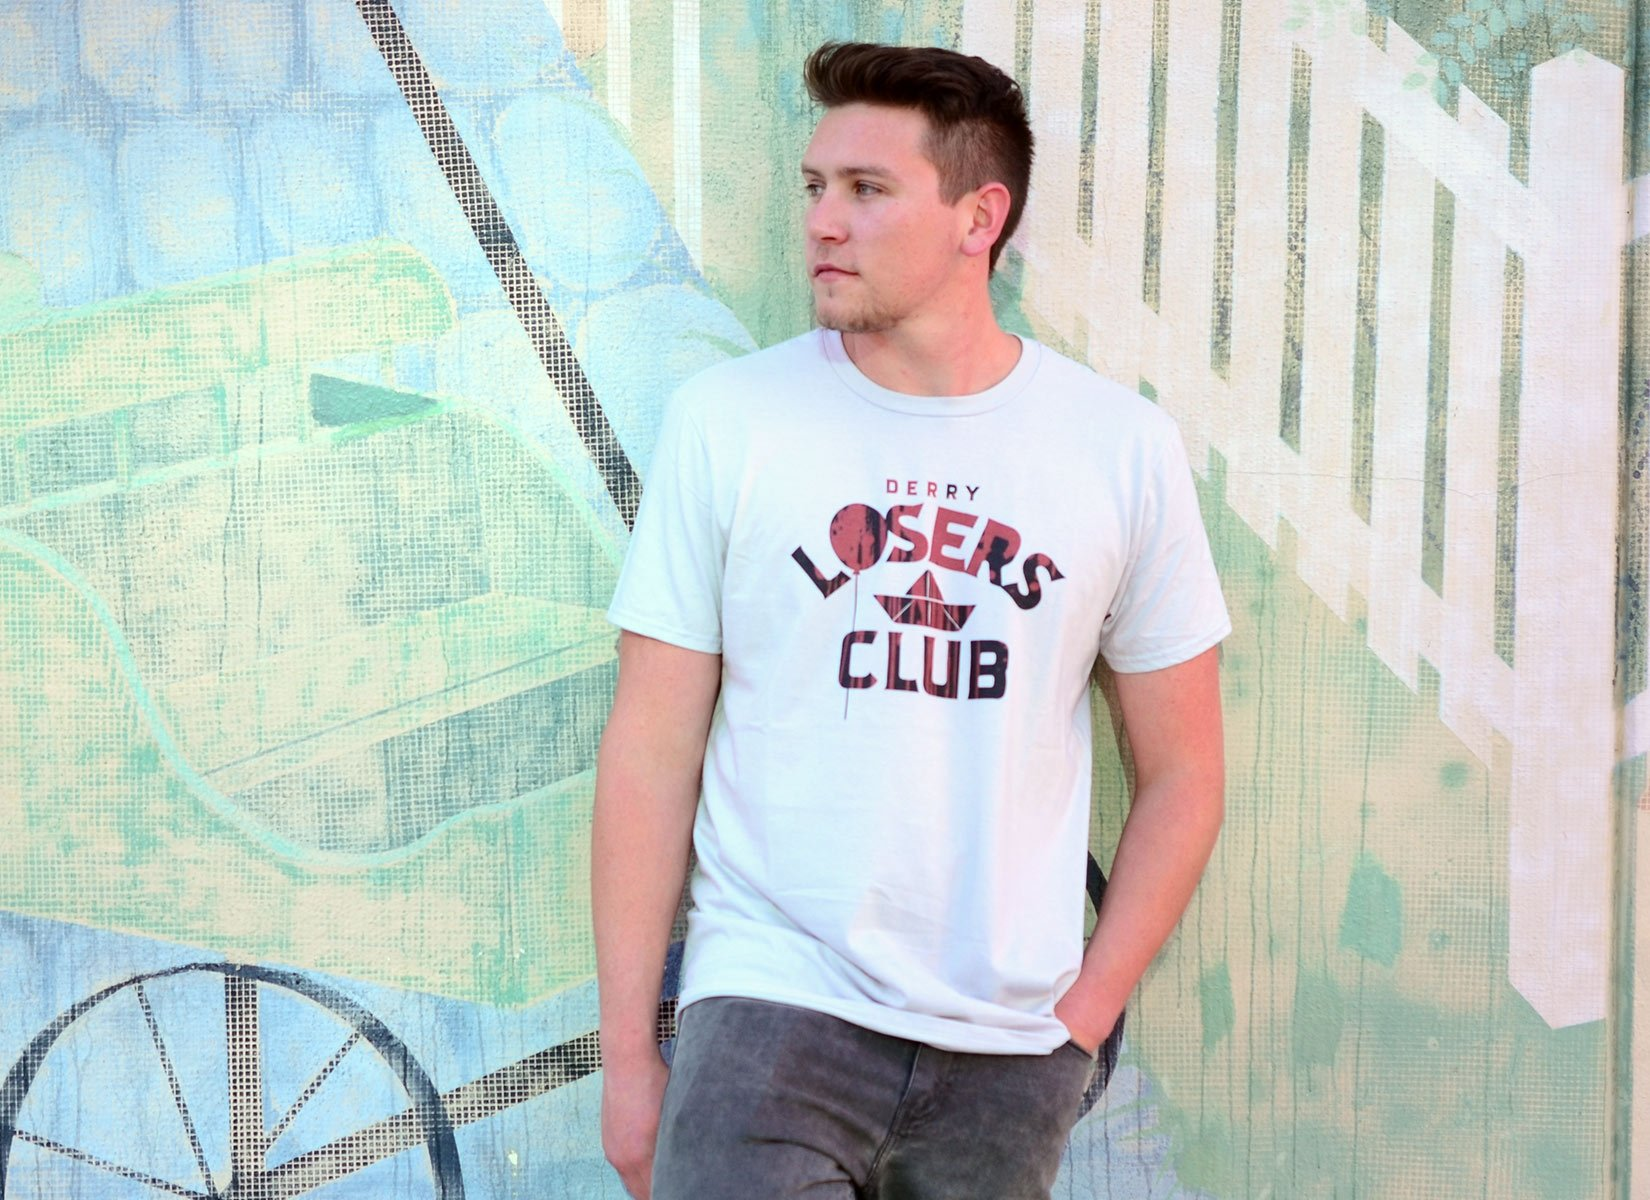 Derry Losers Club on Mens T-Shirt